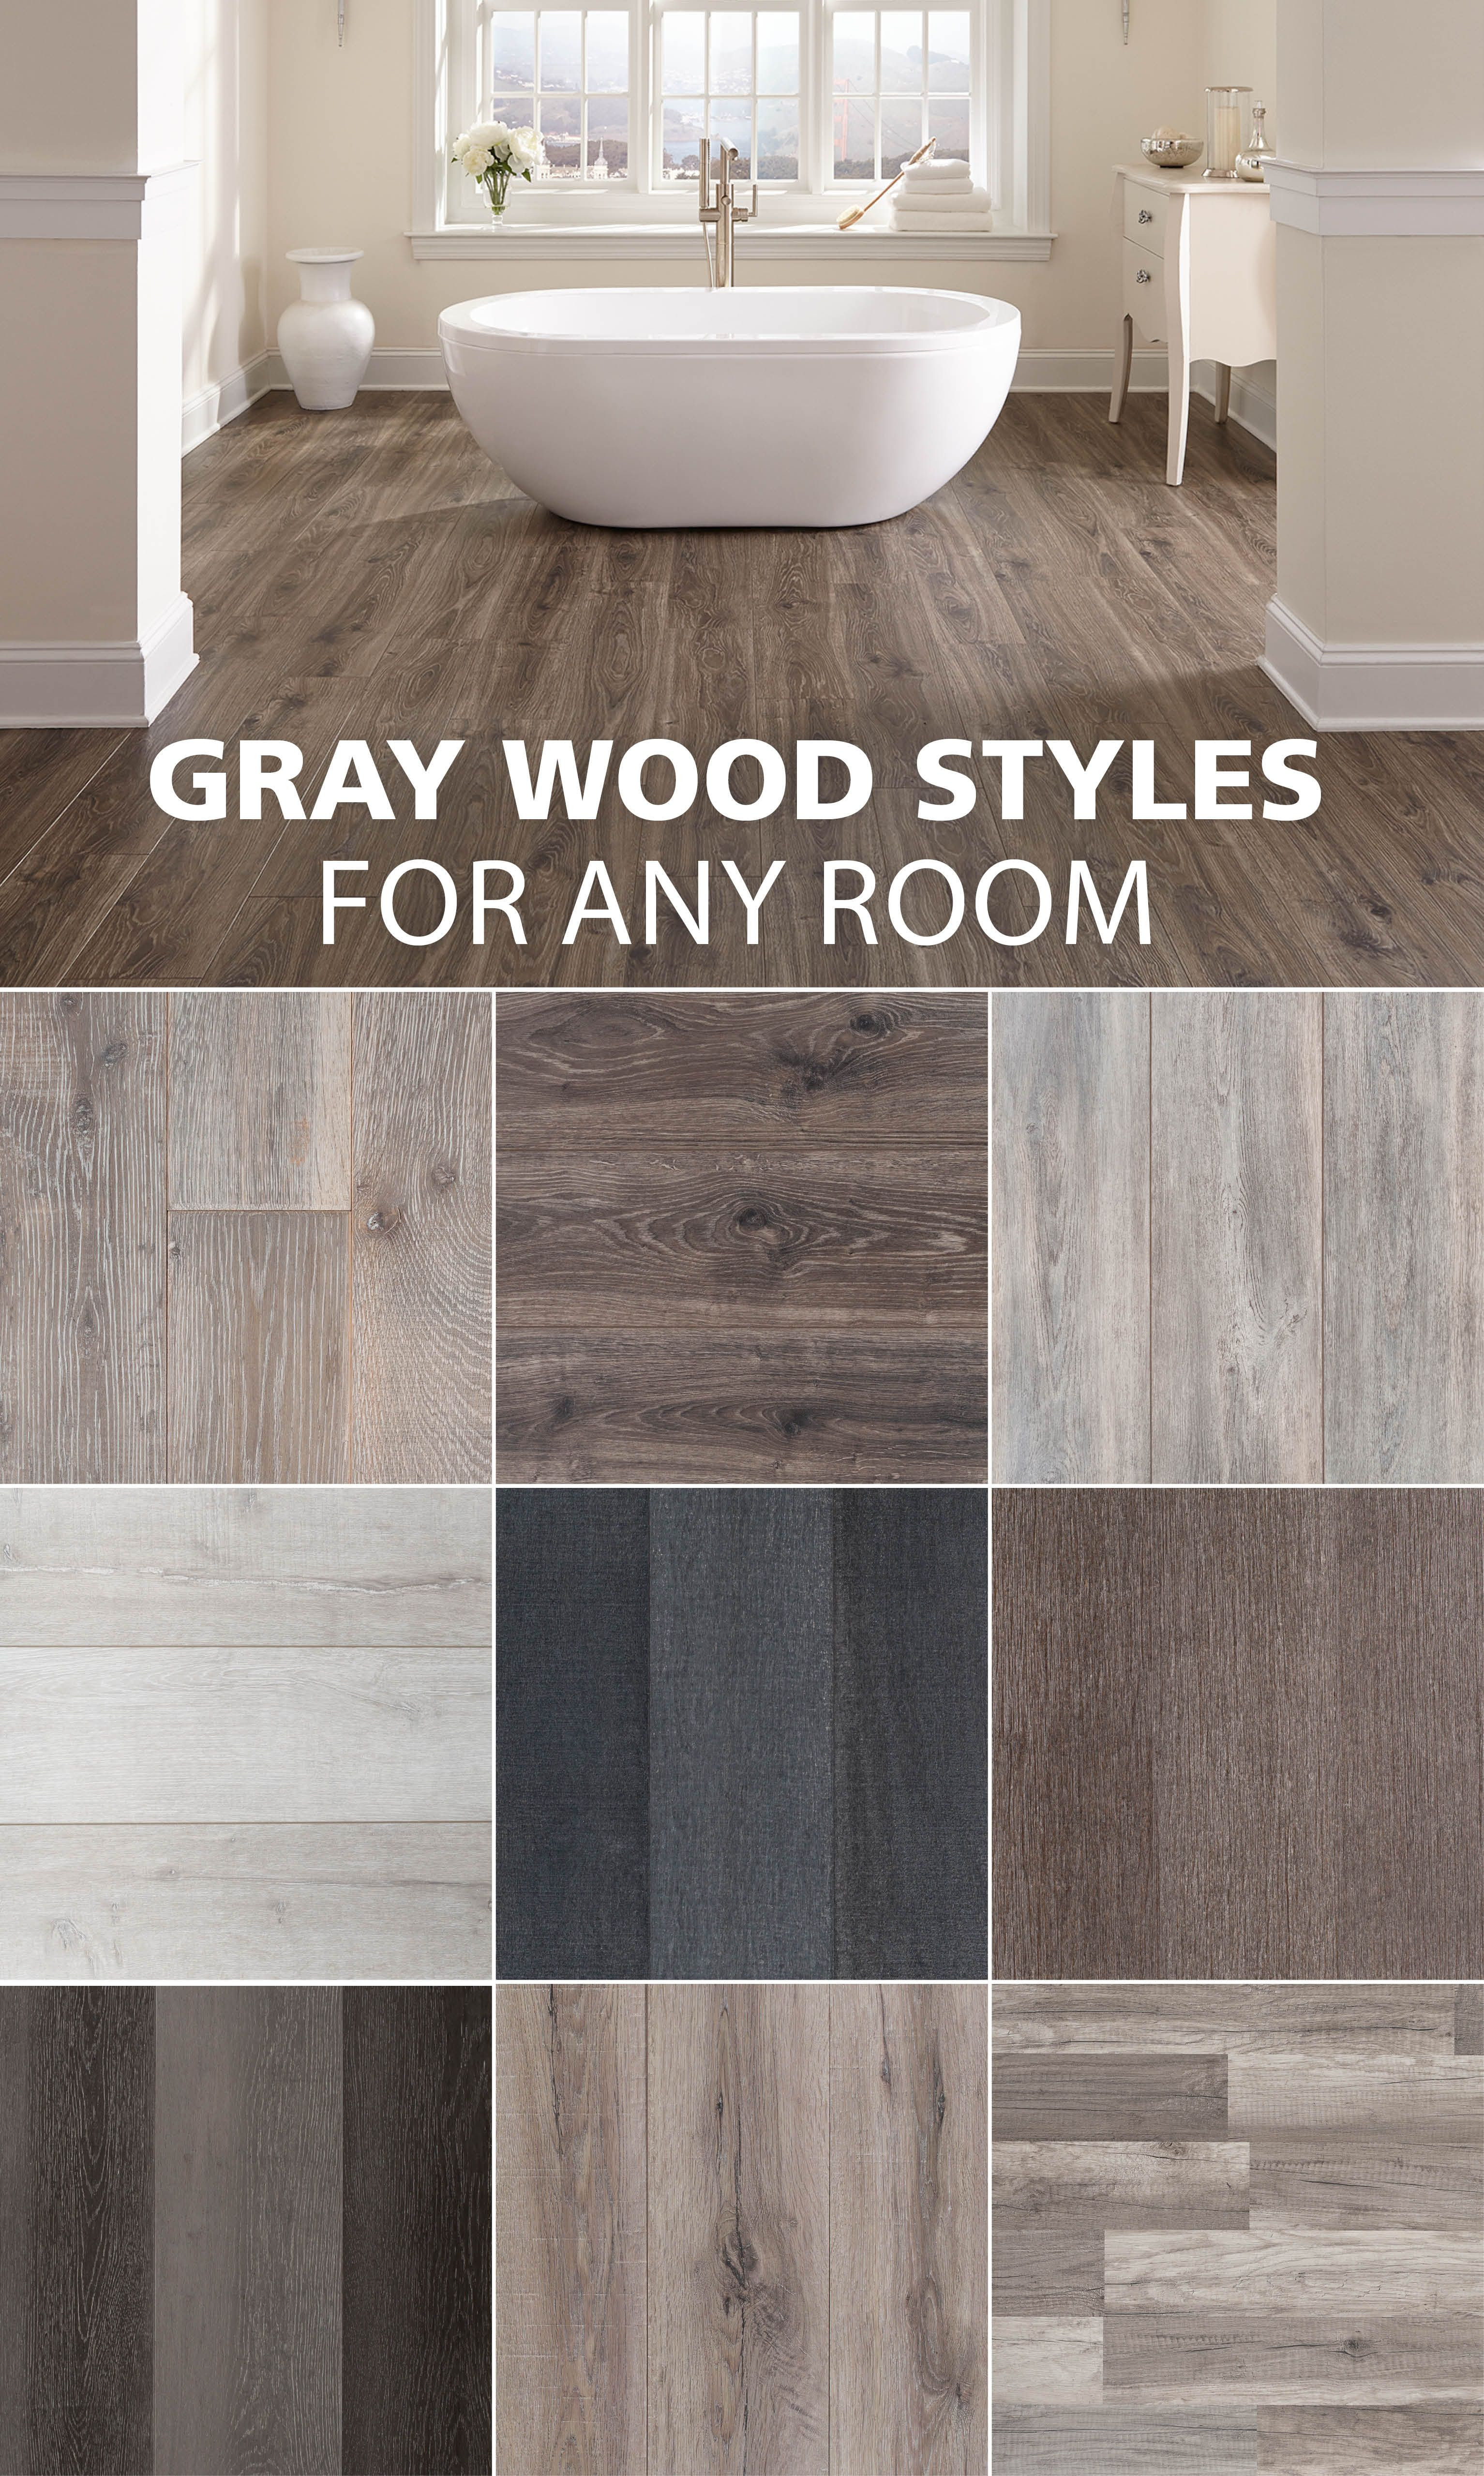 diy hardwood floor cleaner of here are some of our favorite gray wood look styles home decor throughout here are some of our favorite gray wood look styles gray hardwood floors light